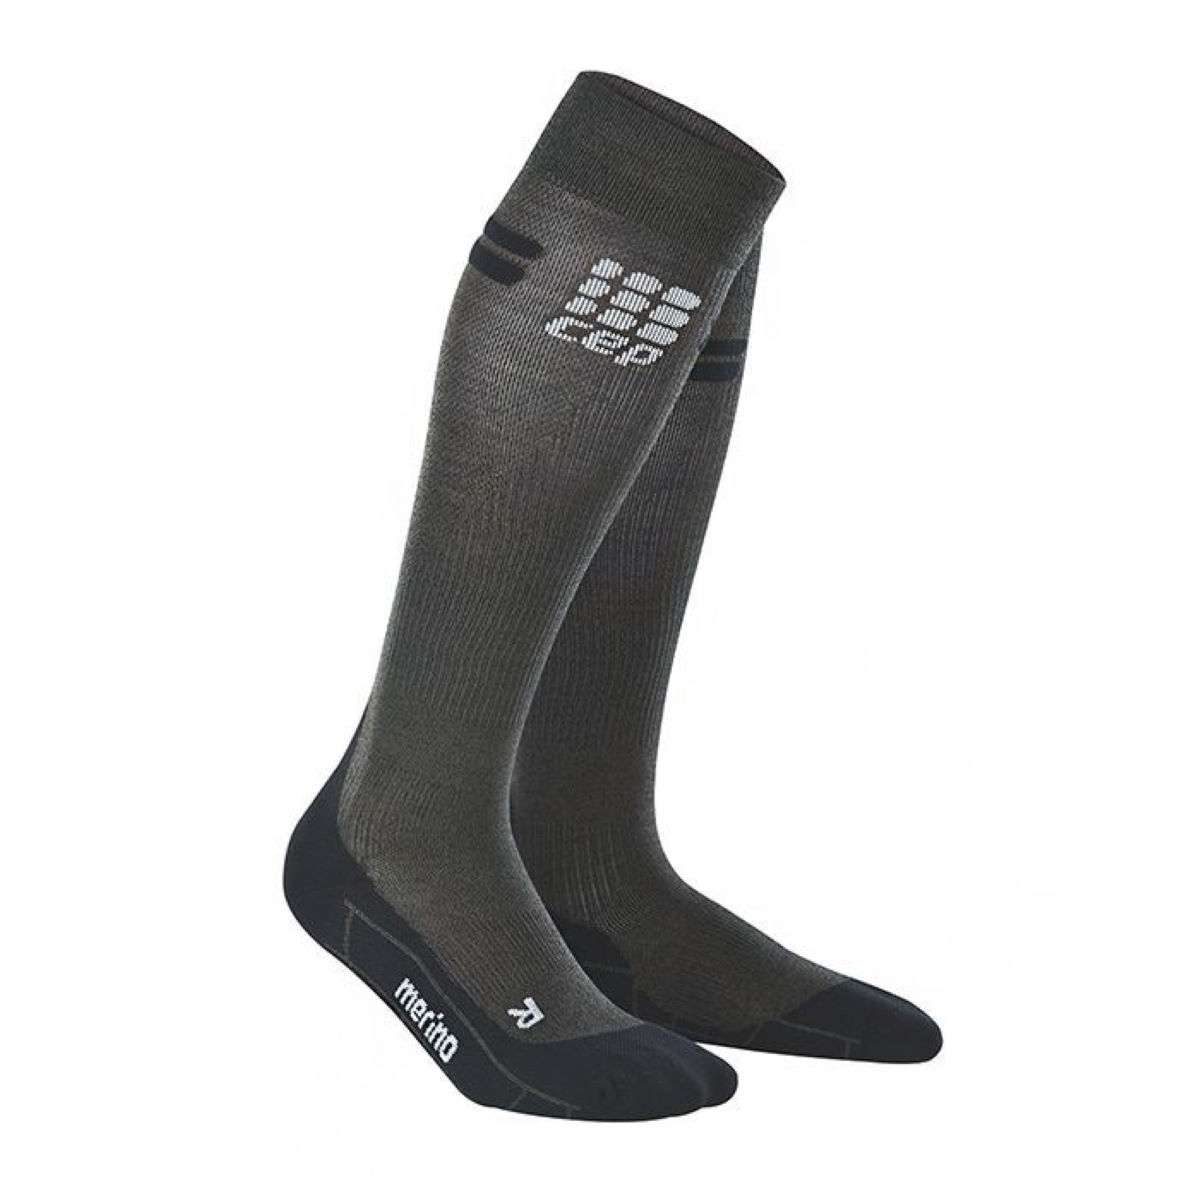 CEP Women's Merino Run Compression Socks - Calcetines para correr